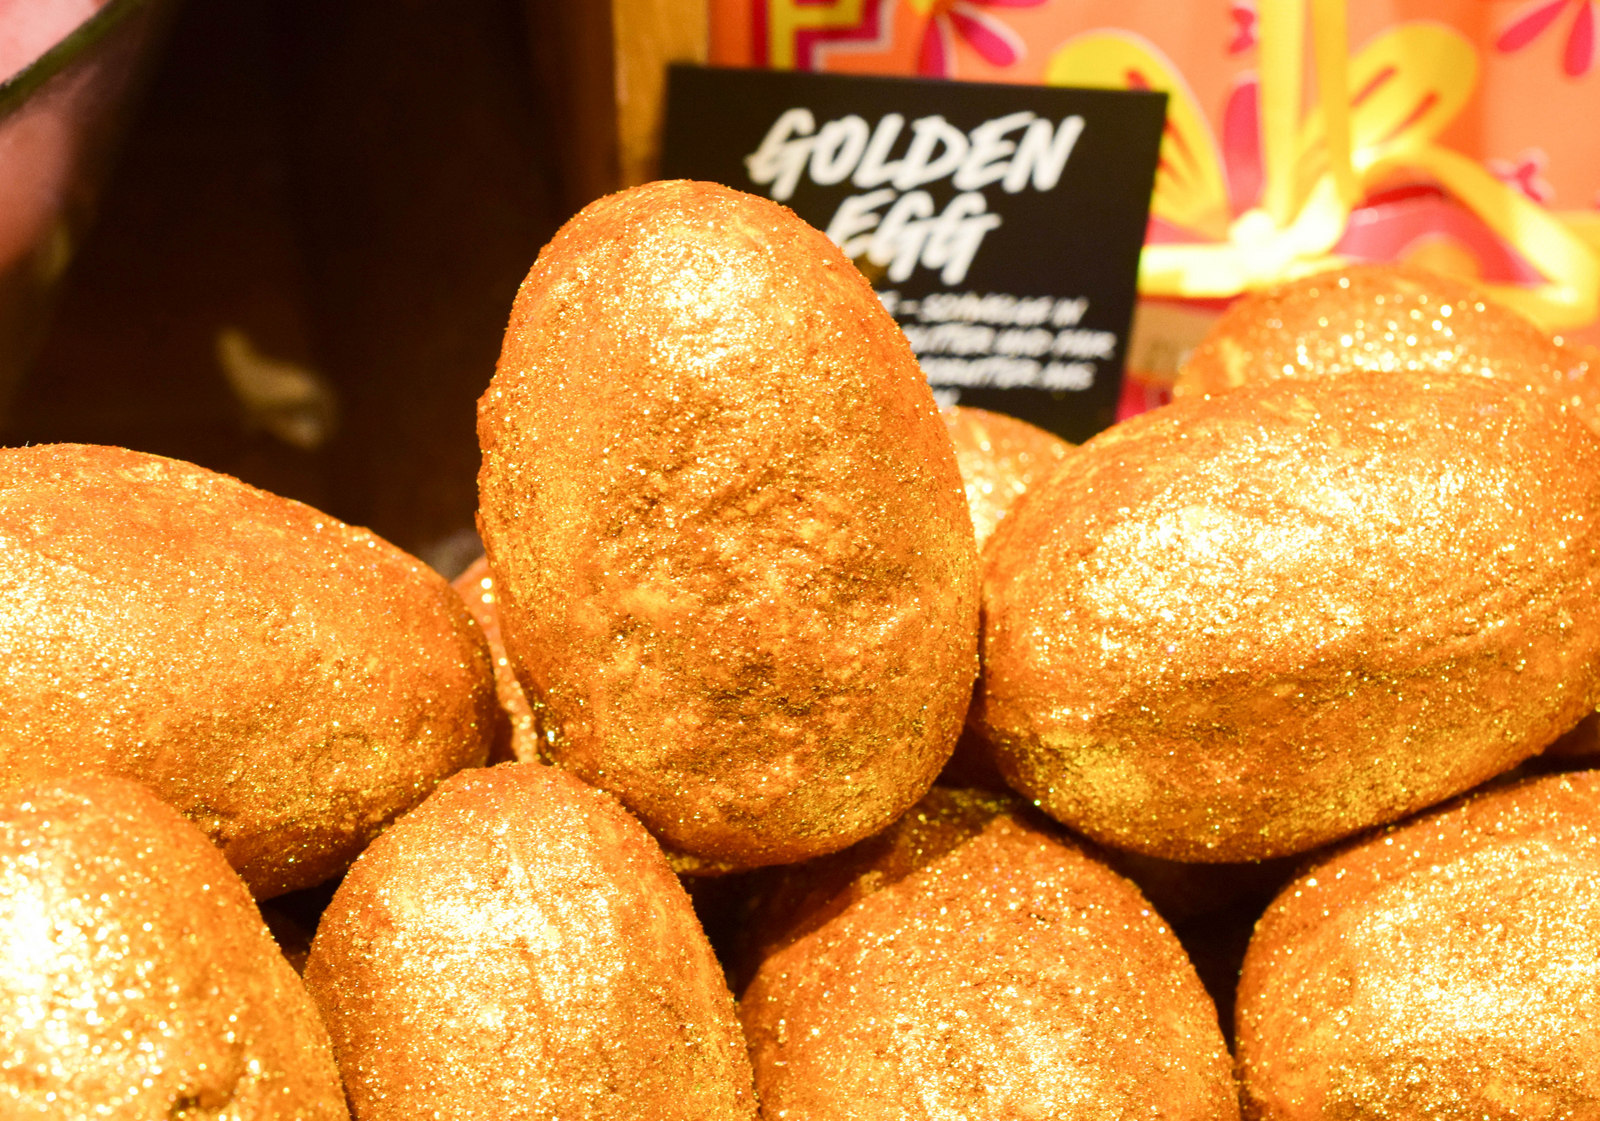 lush-ostern-2016-golden-egg-badekugel